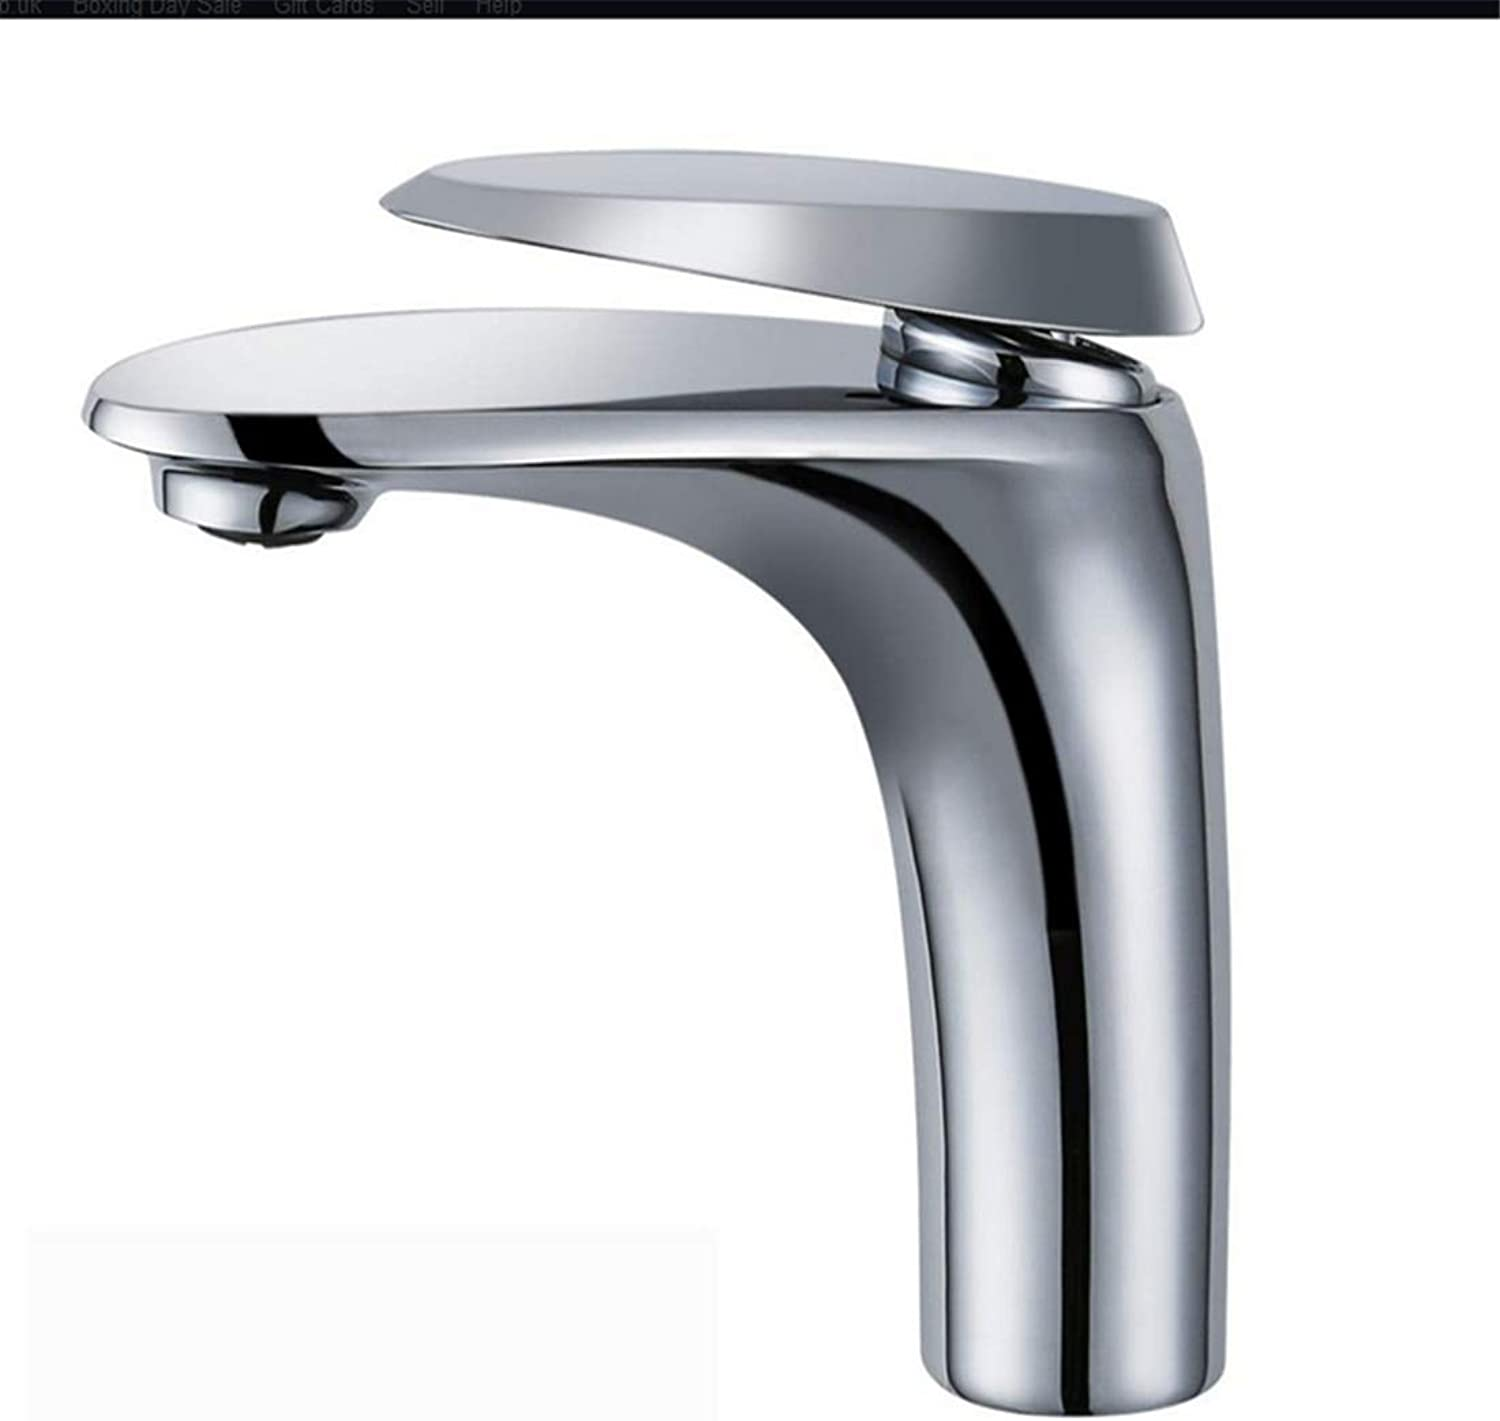 Retro Faucet Bathroom White Above Counter Basin Heightened Washbasin Faucet